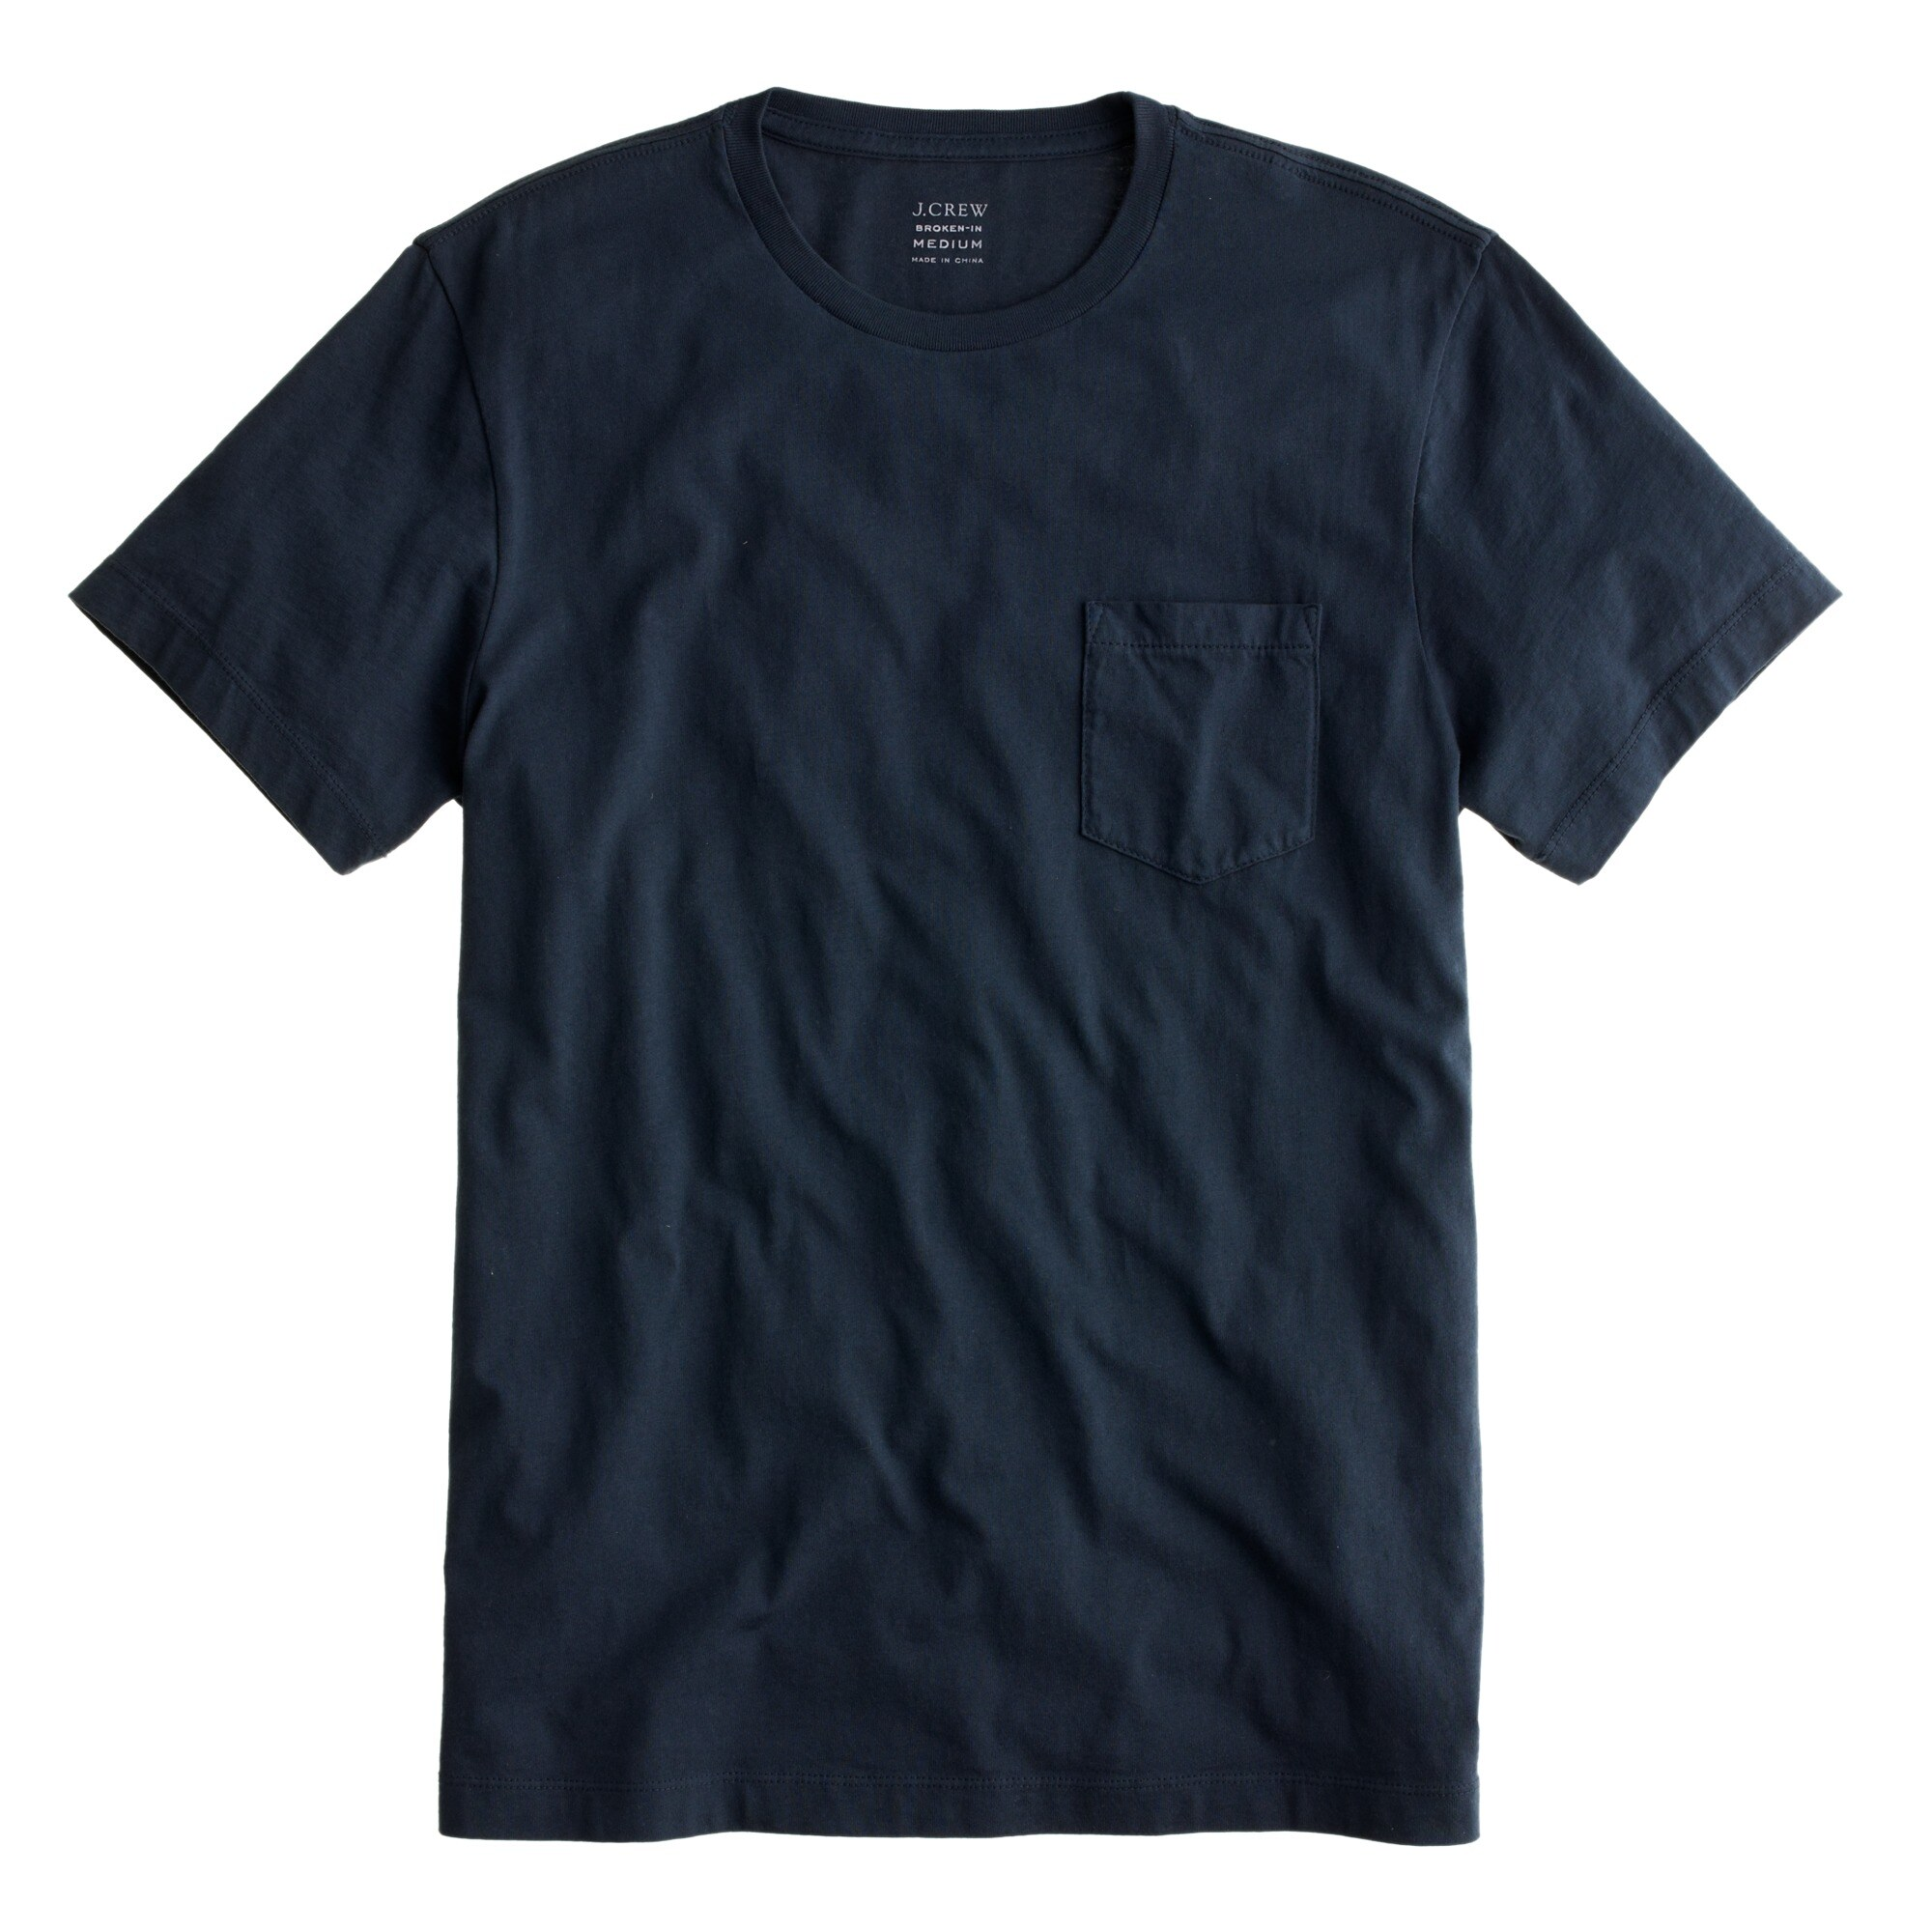 Image 2 for Tall broken-in pocket T-shirt